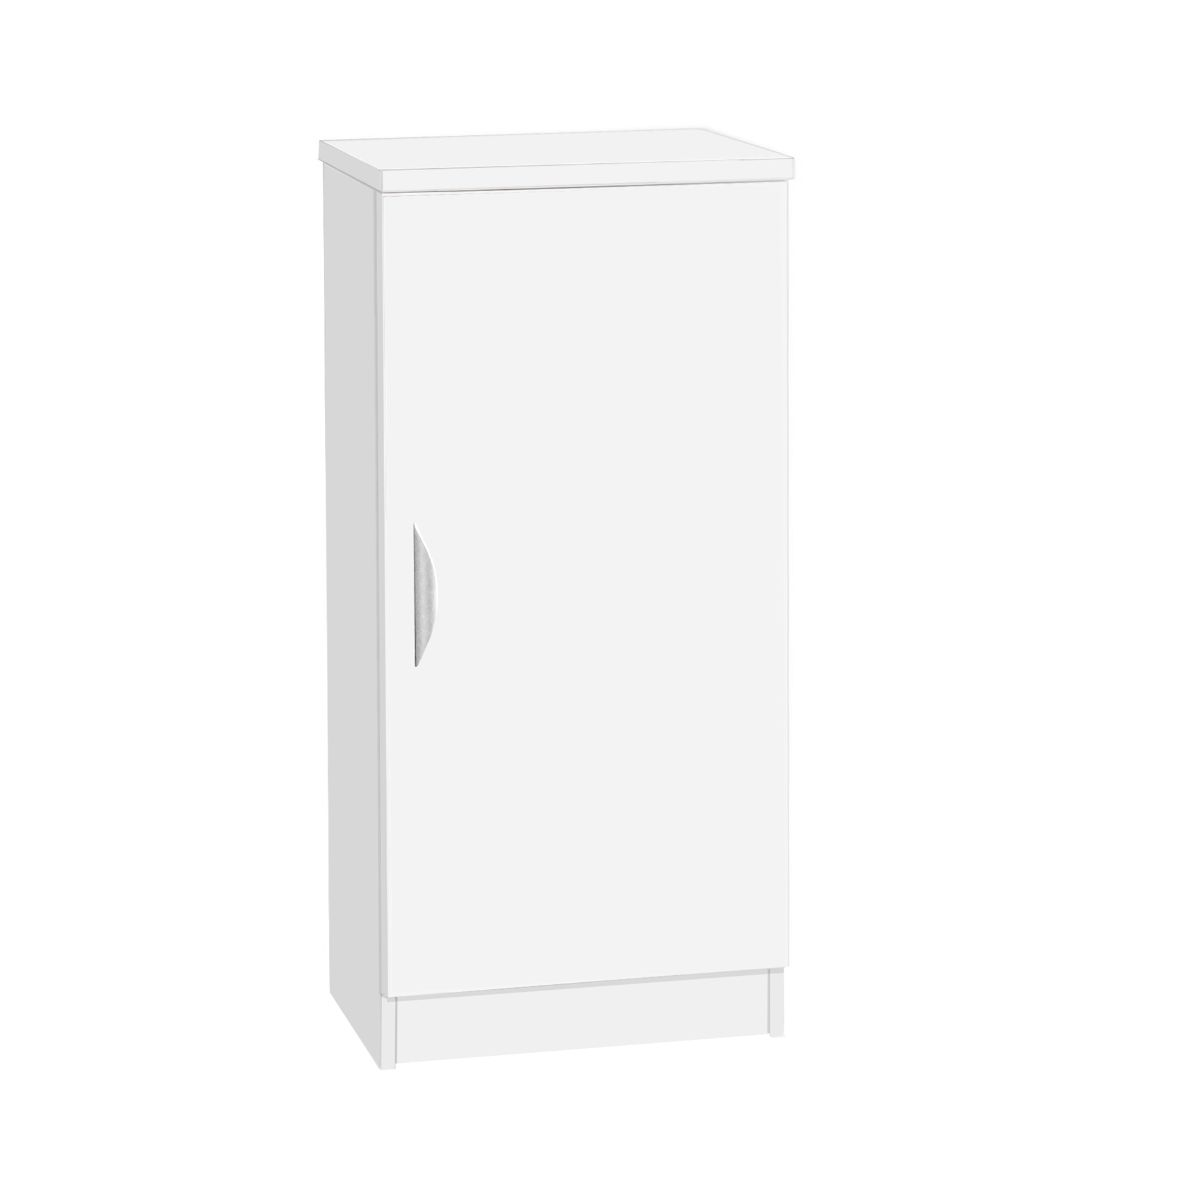 R White Mid Height Cupboard, White